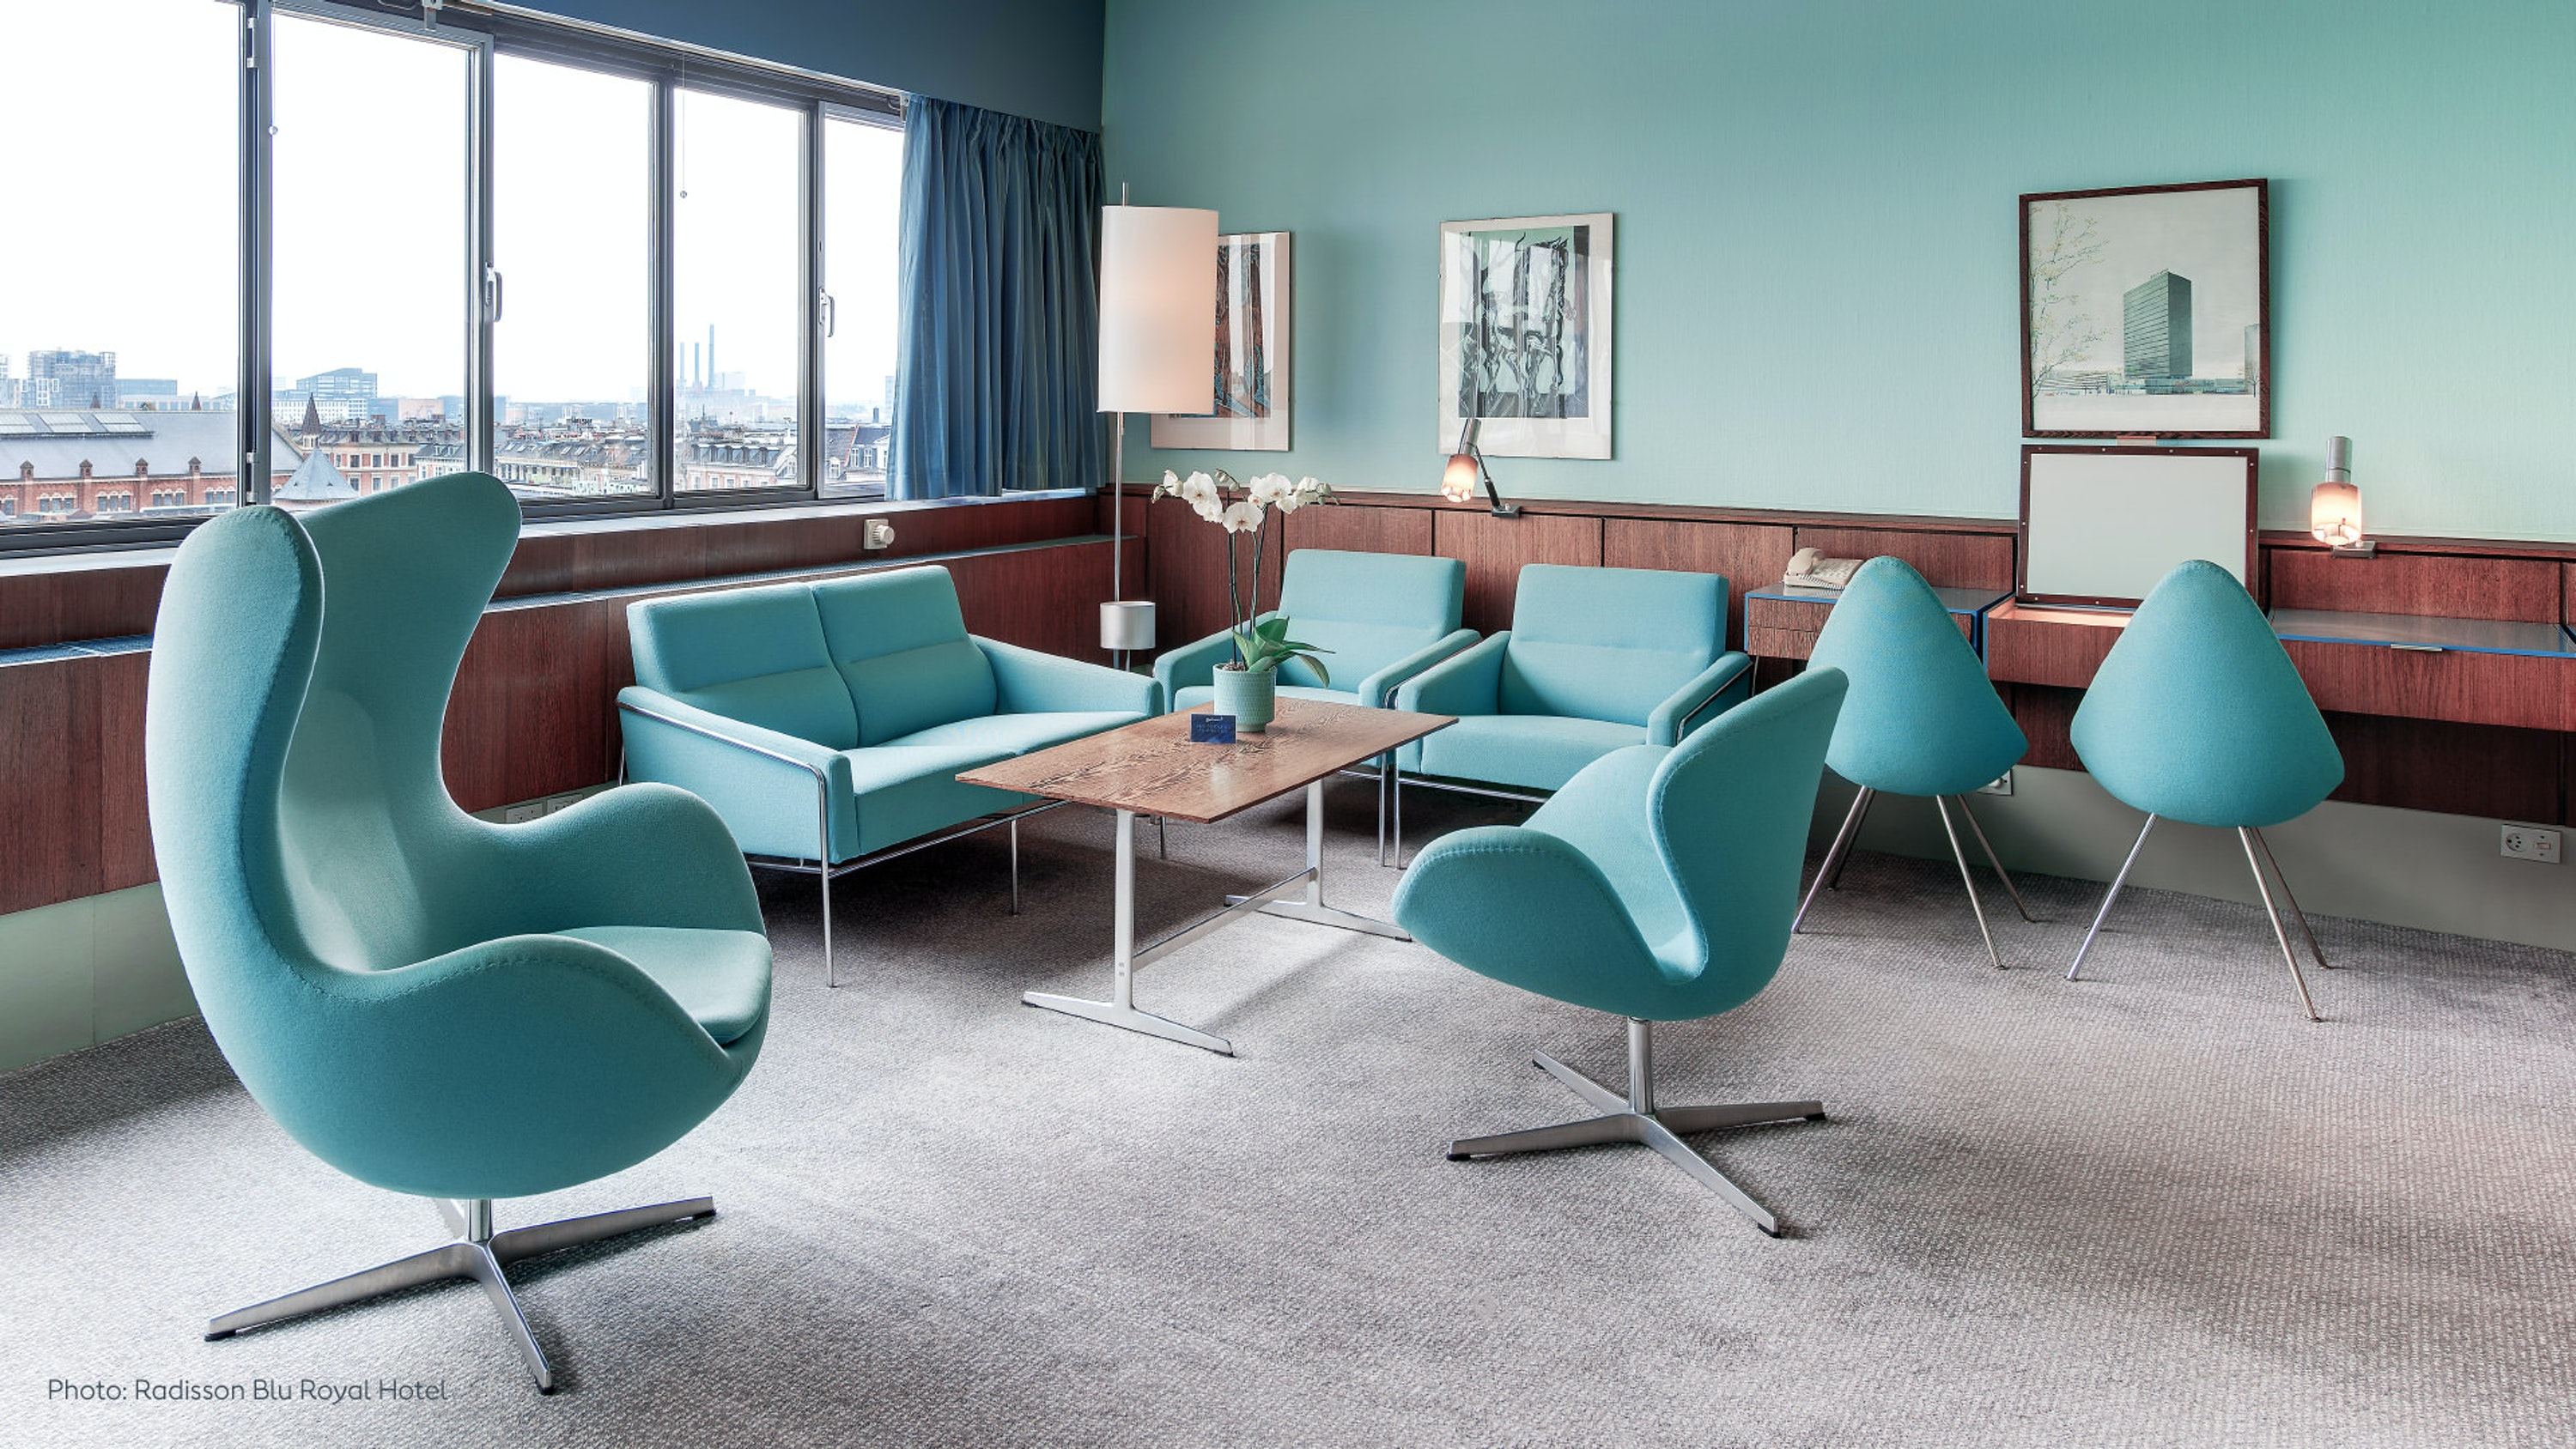 Radisson SAS Royal Hotel Room 606 by Arne Jacobsen for inspiration